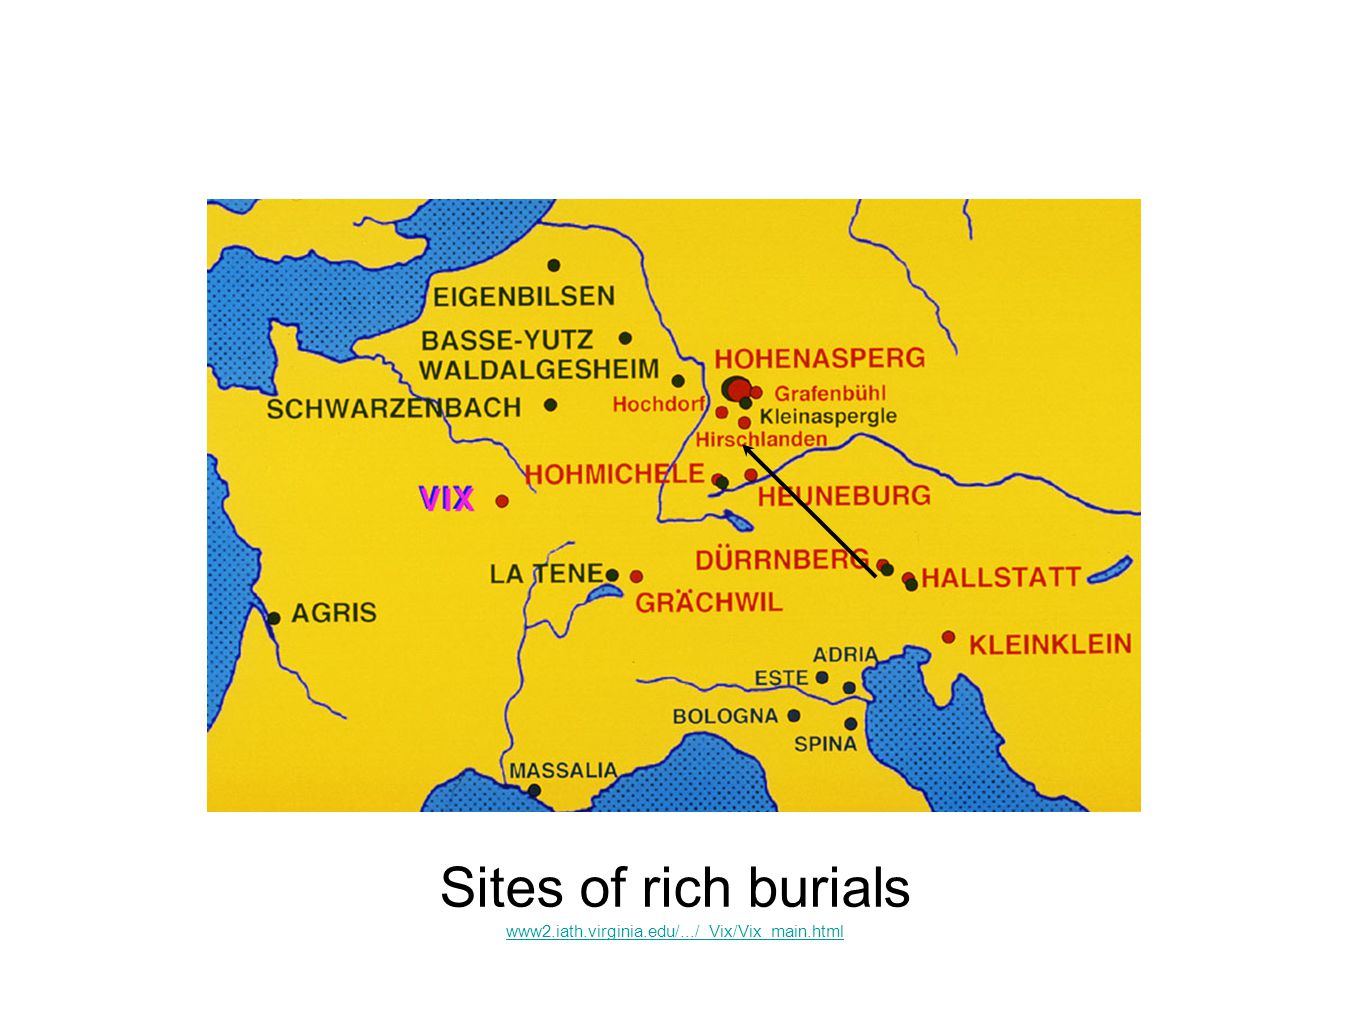 Sites of rich burials www2.iath.virginia.edu/.../ Vix/Vix_main.html